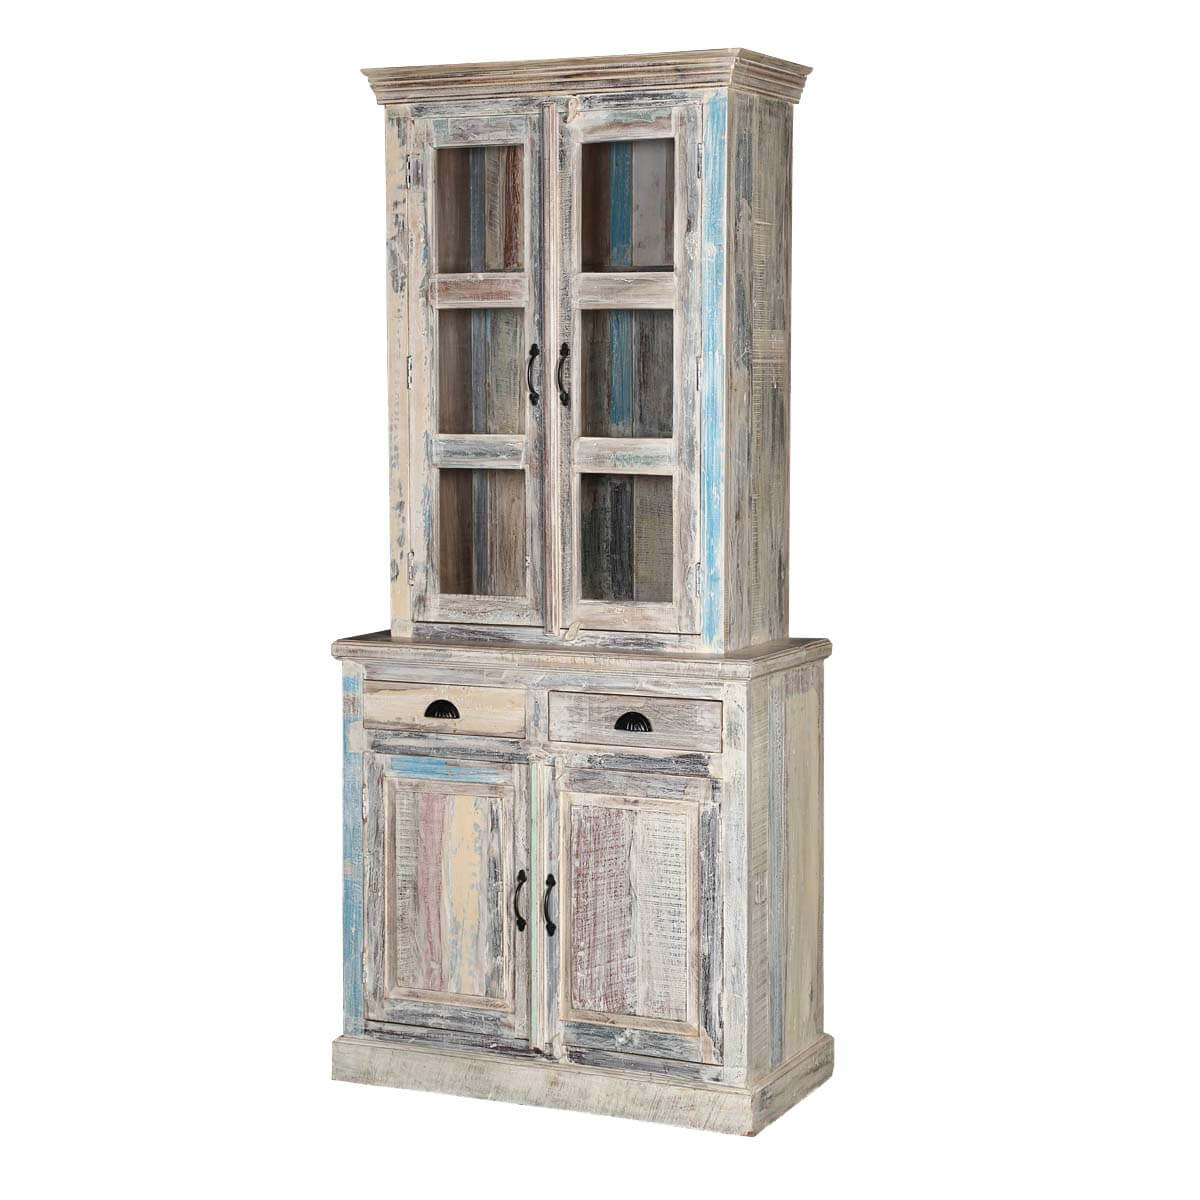 "Palazzo 83"" White and Blue Rustic Solid Wood Dining Hutch Cabinet"